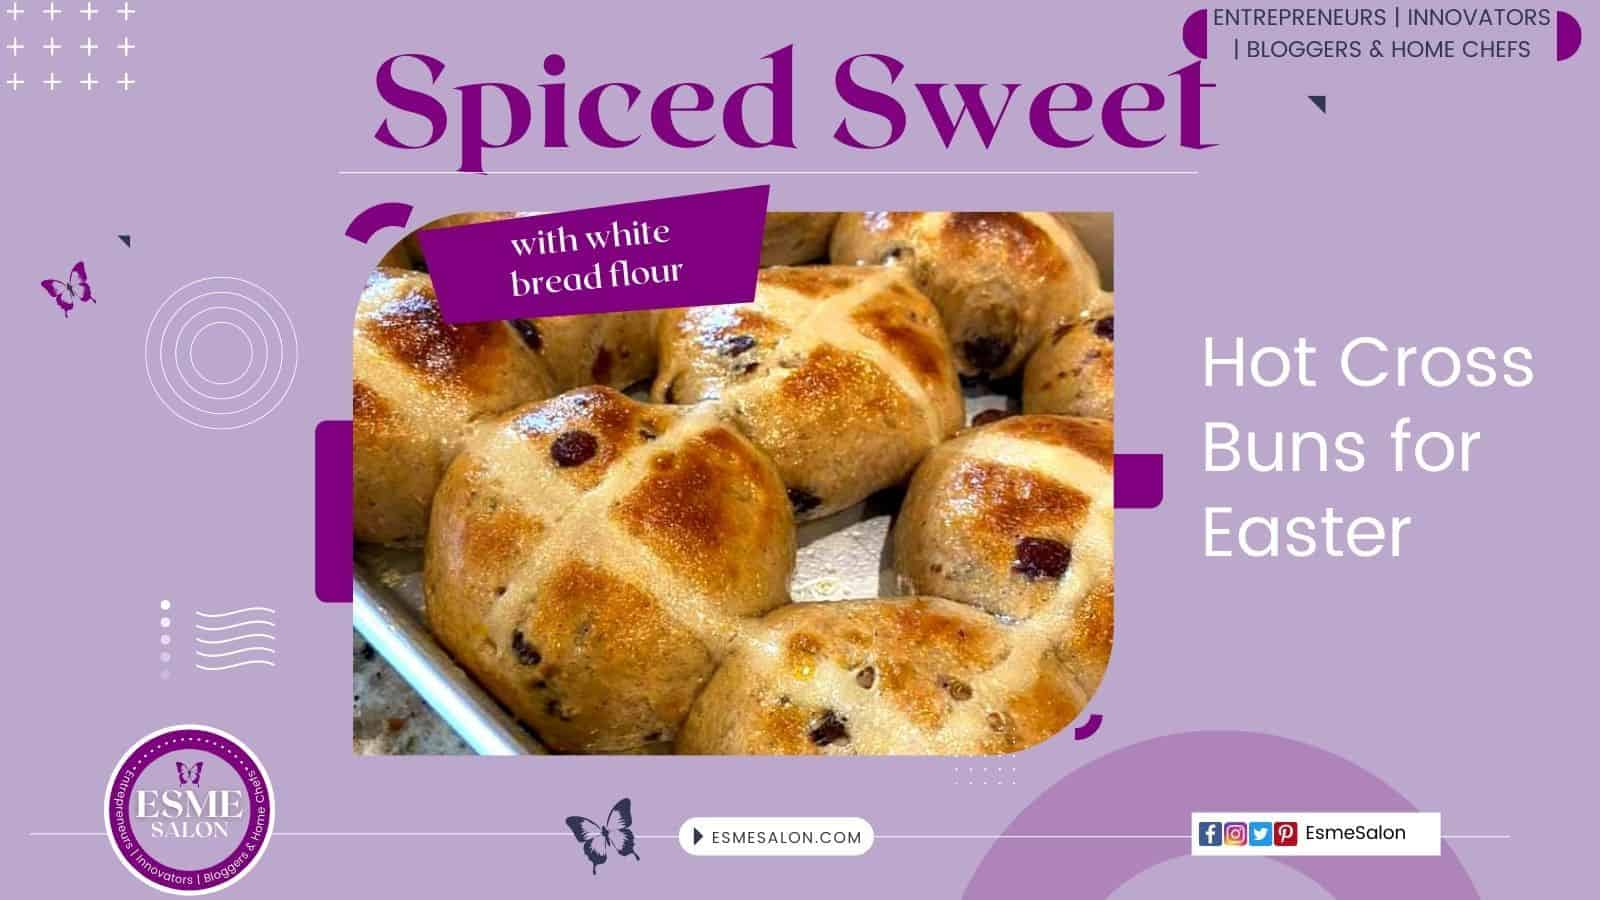 Hot Cross Buns for Easter studded with fruit